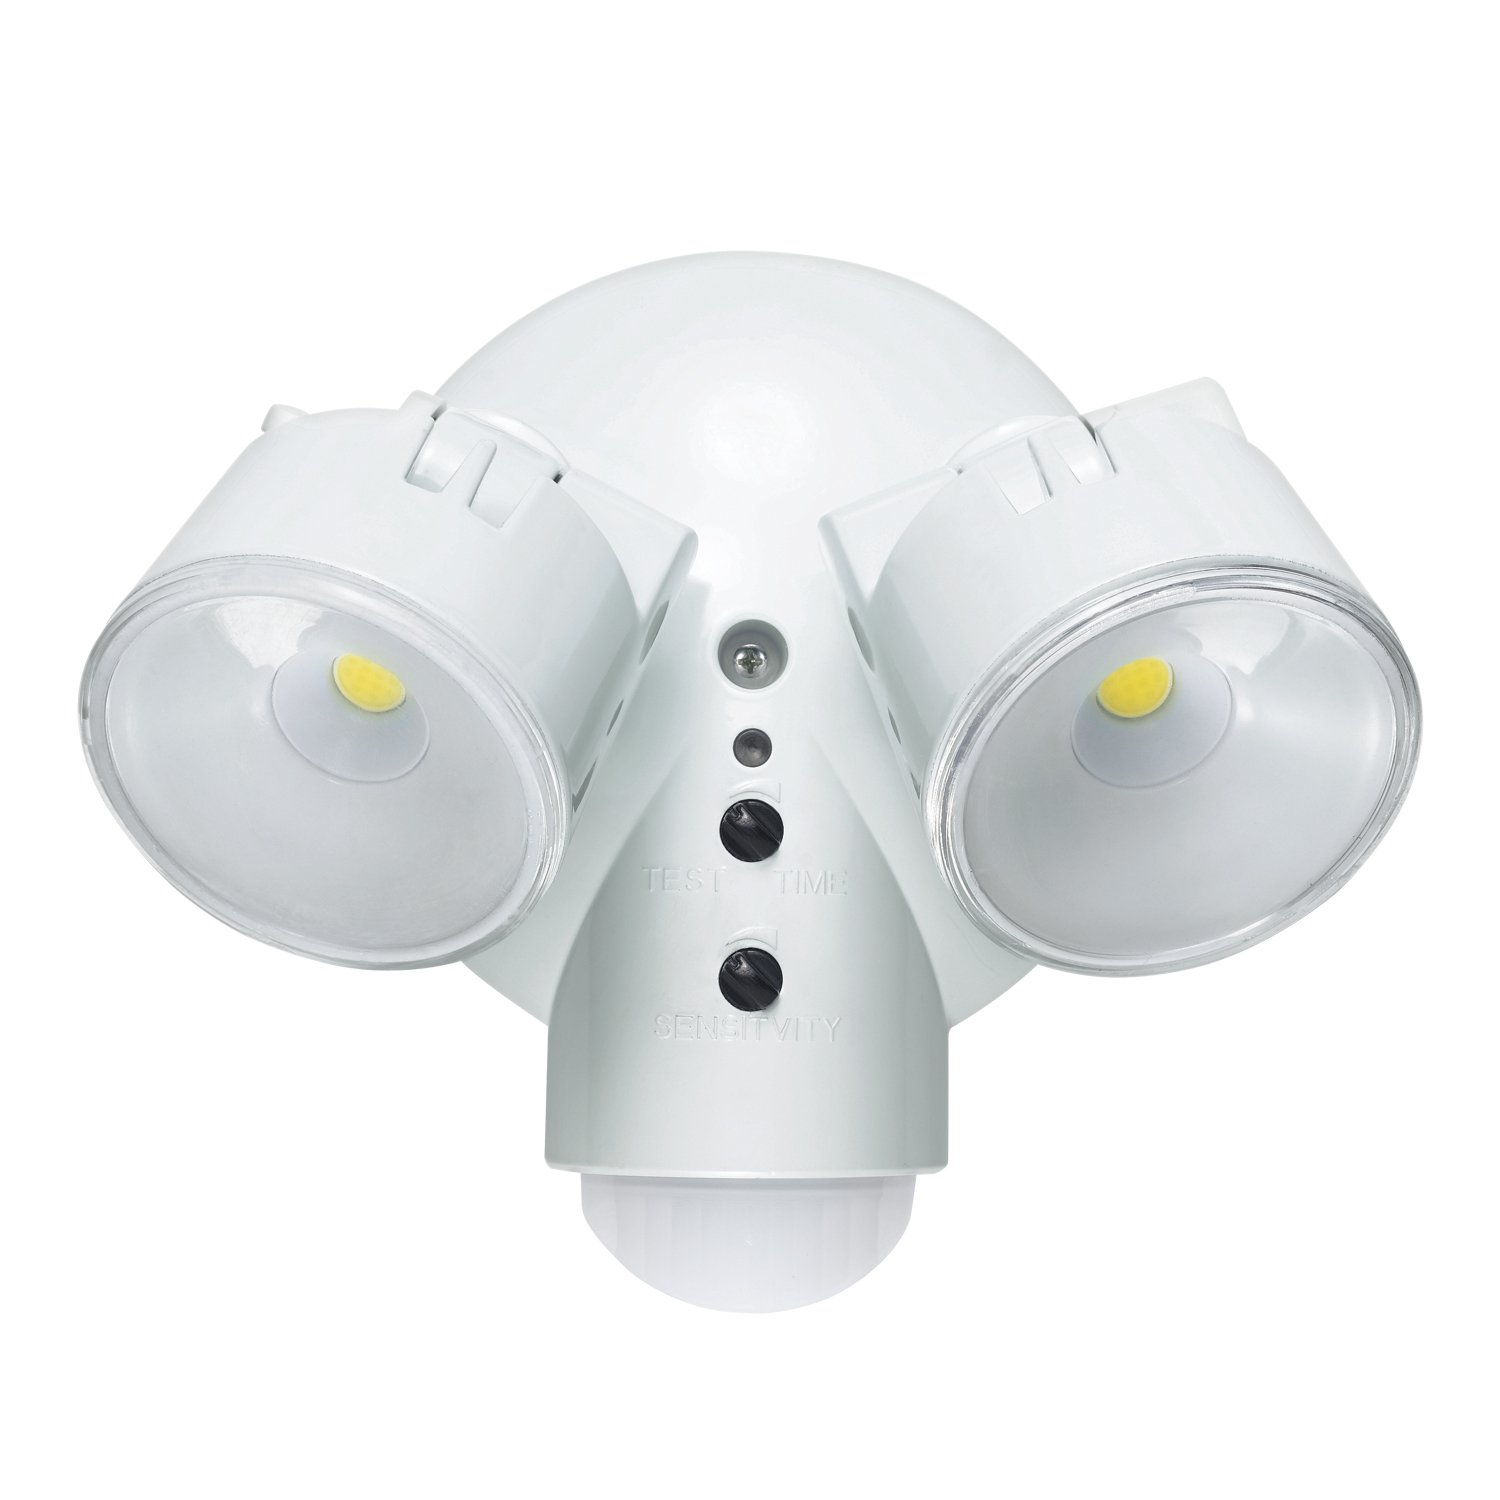 Globe Electric Weather Resistant Dusk to Dawn Adjustable Motion Activated Security Light, 180 Degree Detection Zone, 1800 Lumens, 29.4W LED Bulbs Included, 79585